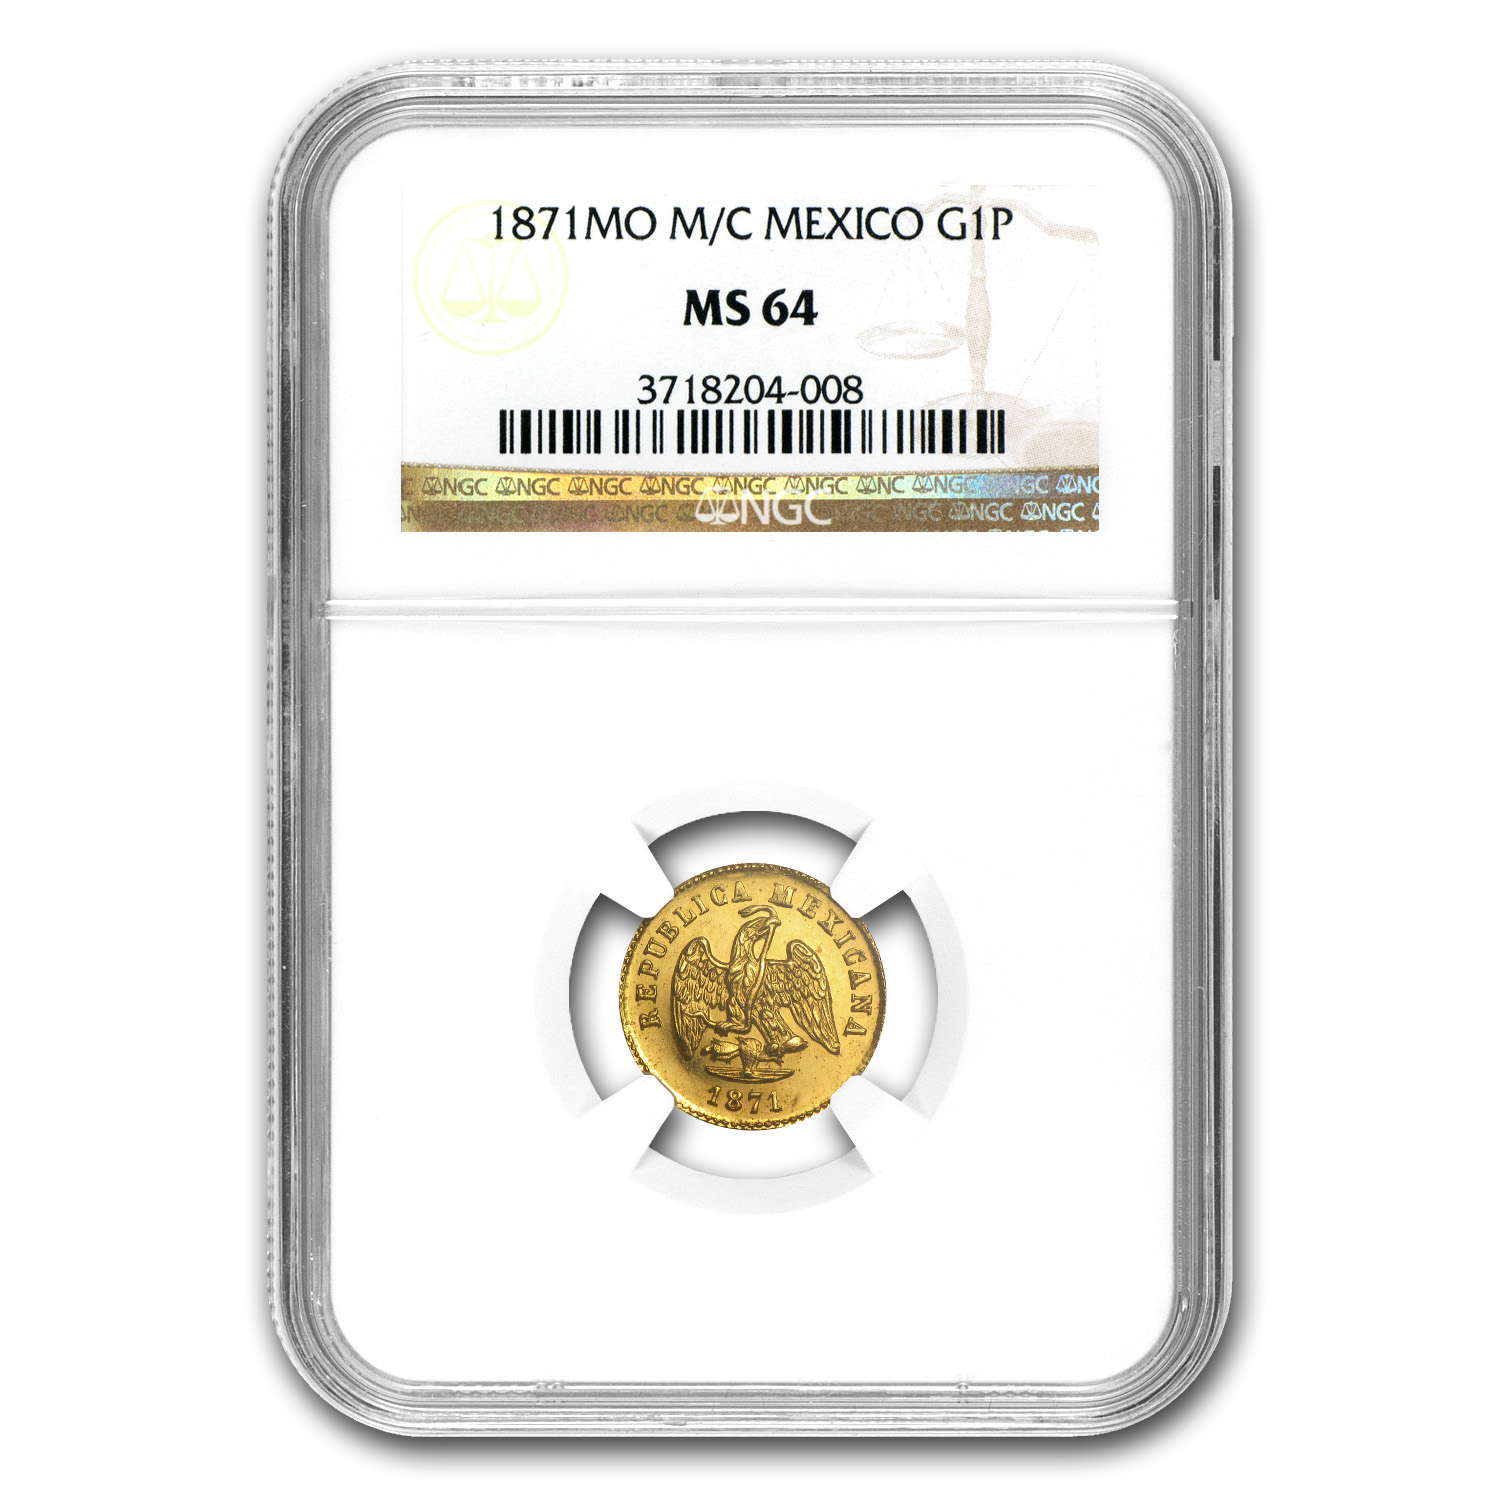 1871-Mo M/C Mexico Gold Peso MS-64 NGC